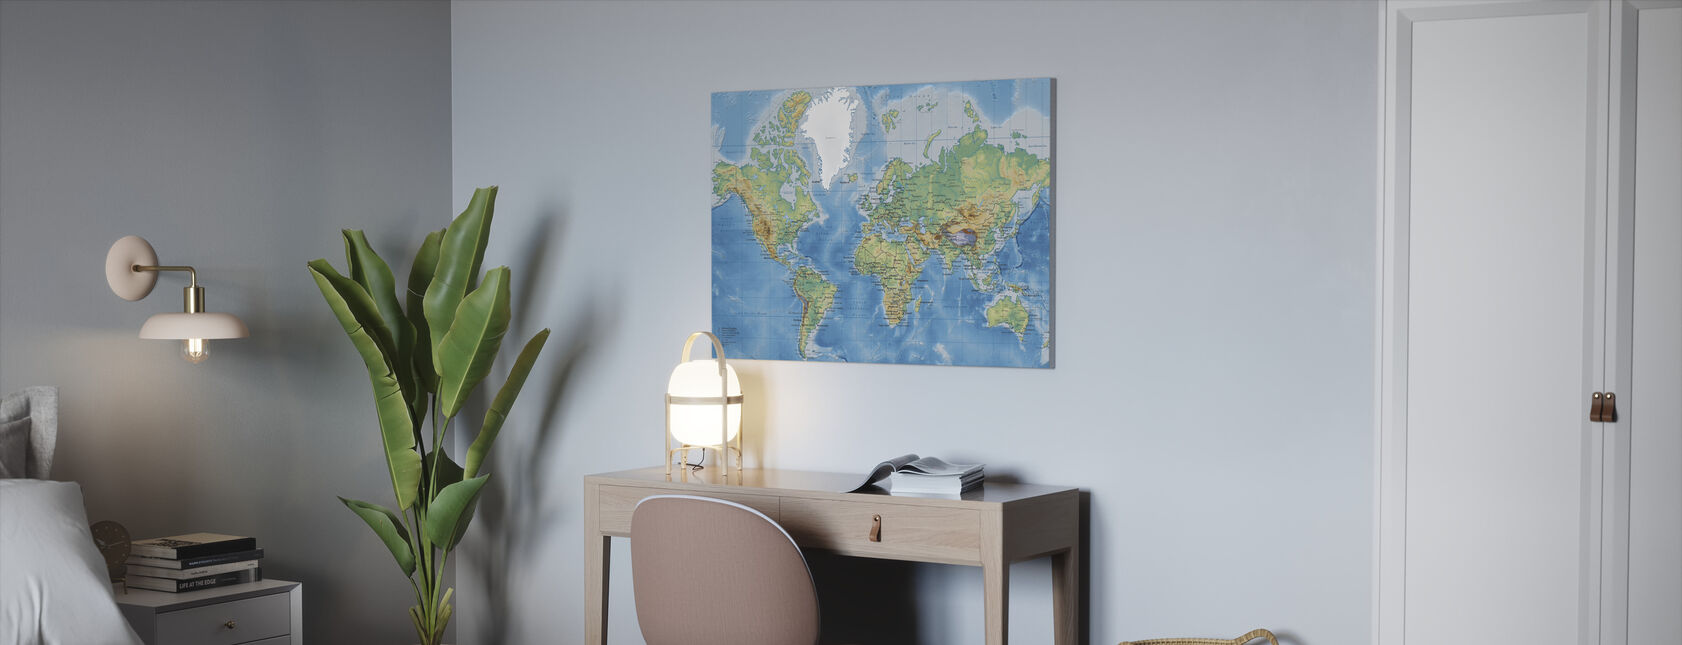 World Map Detailed - Canvas print - Office